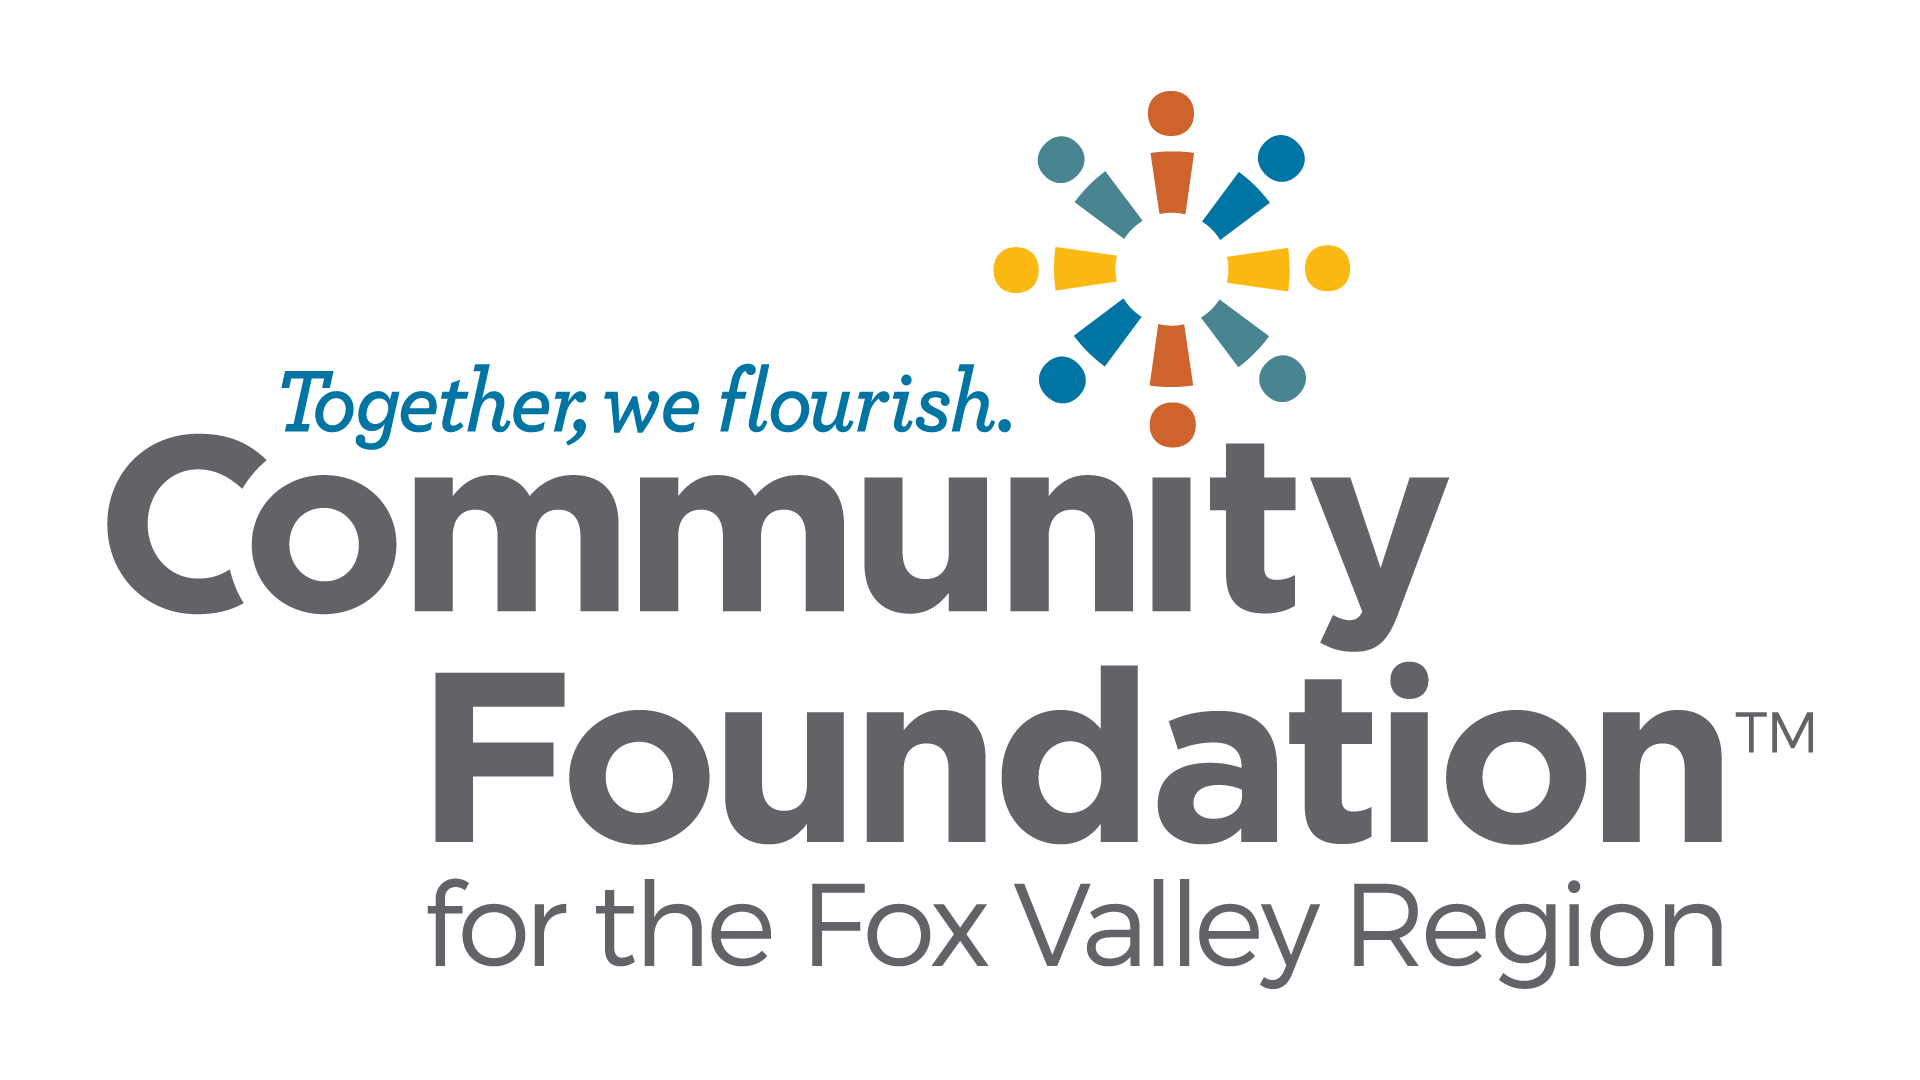 Community Foundation for the Fox Valley Region. Together, we flourish.